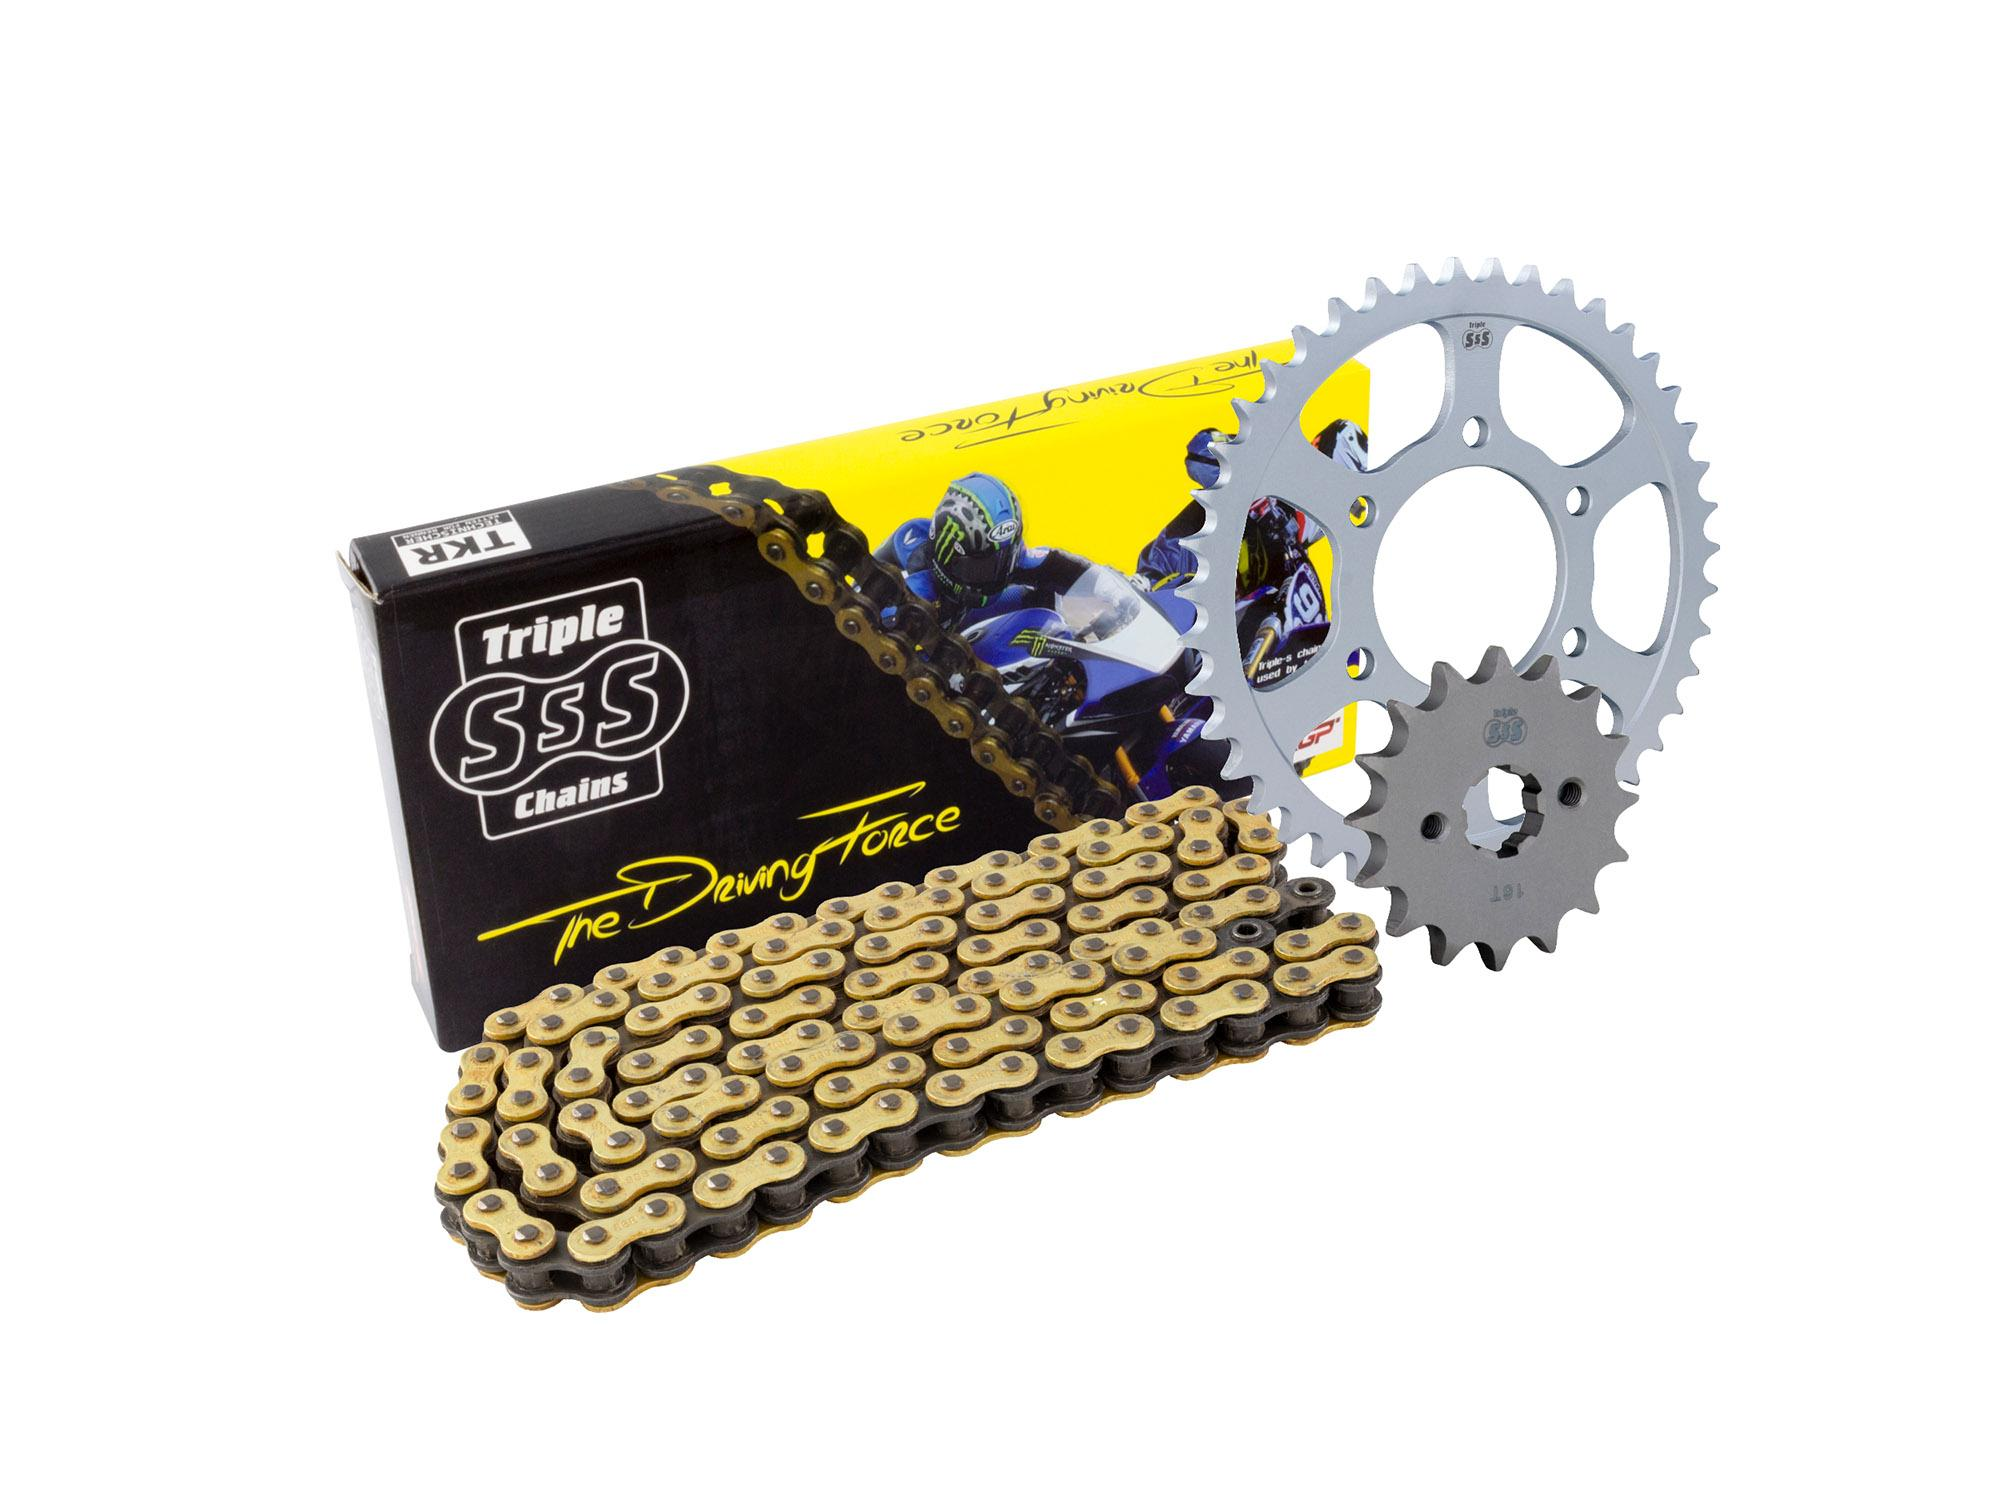 Suzuki GSX-R600 L1 11 Chain & Sprocket Kit: 16T Front, 43T Rear, HD O-Ring Gold Chain 525H 114 Link